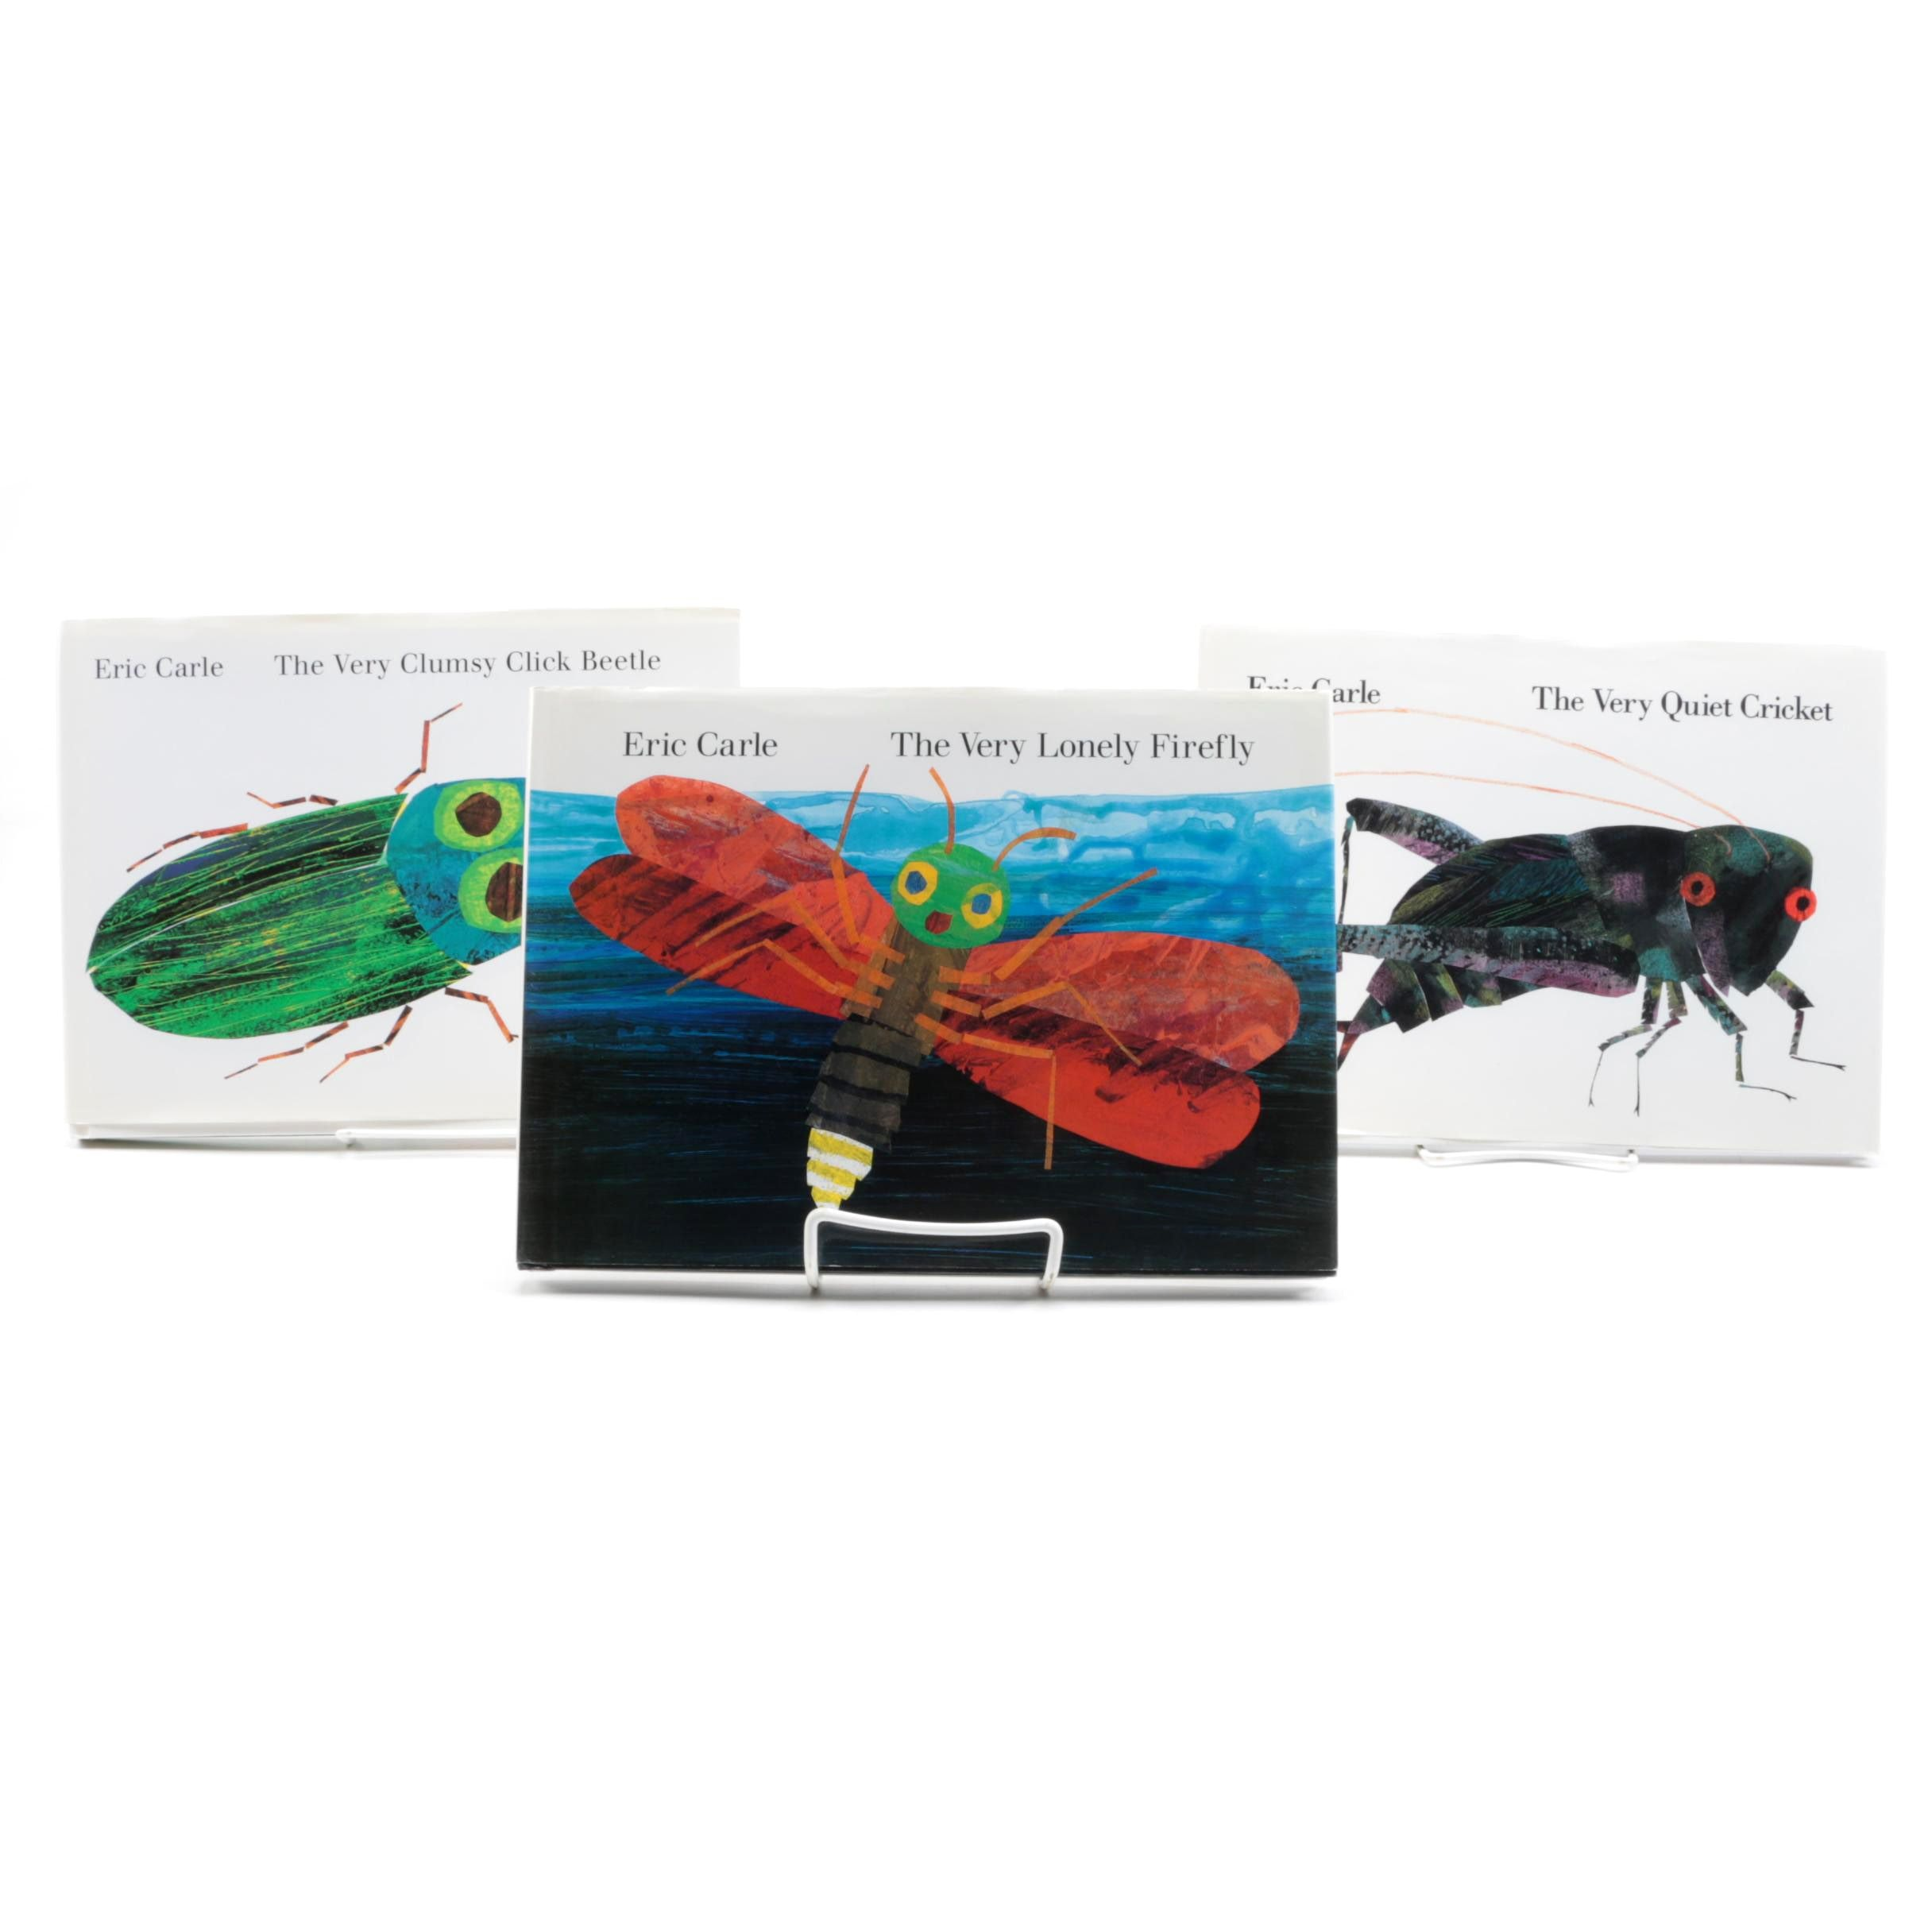 Signed Works by Eric Carle featuring Anniversary and First Editions